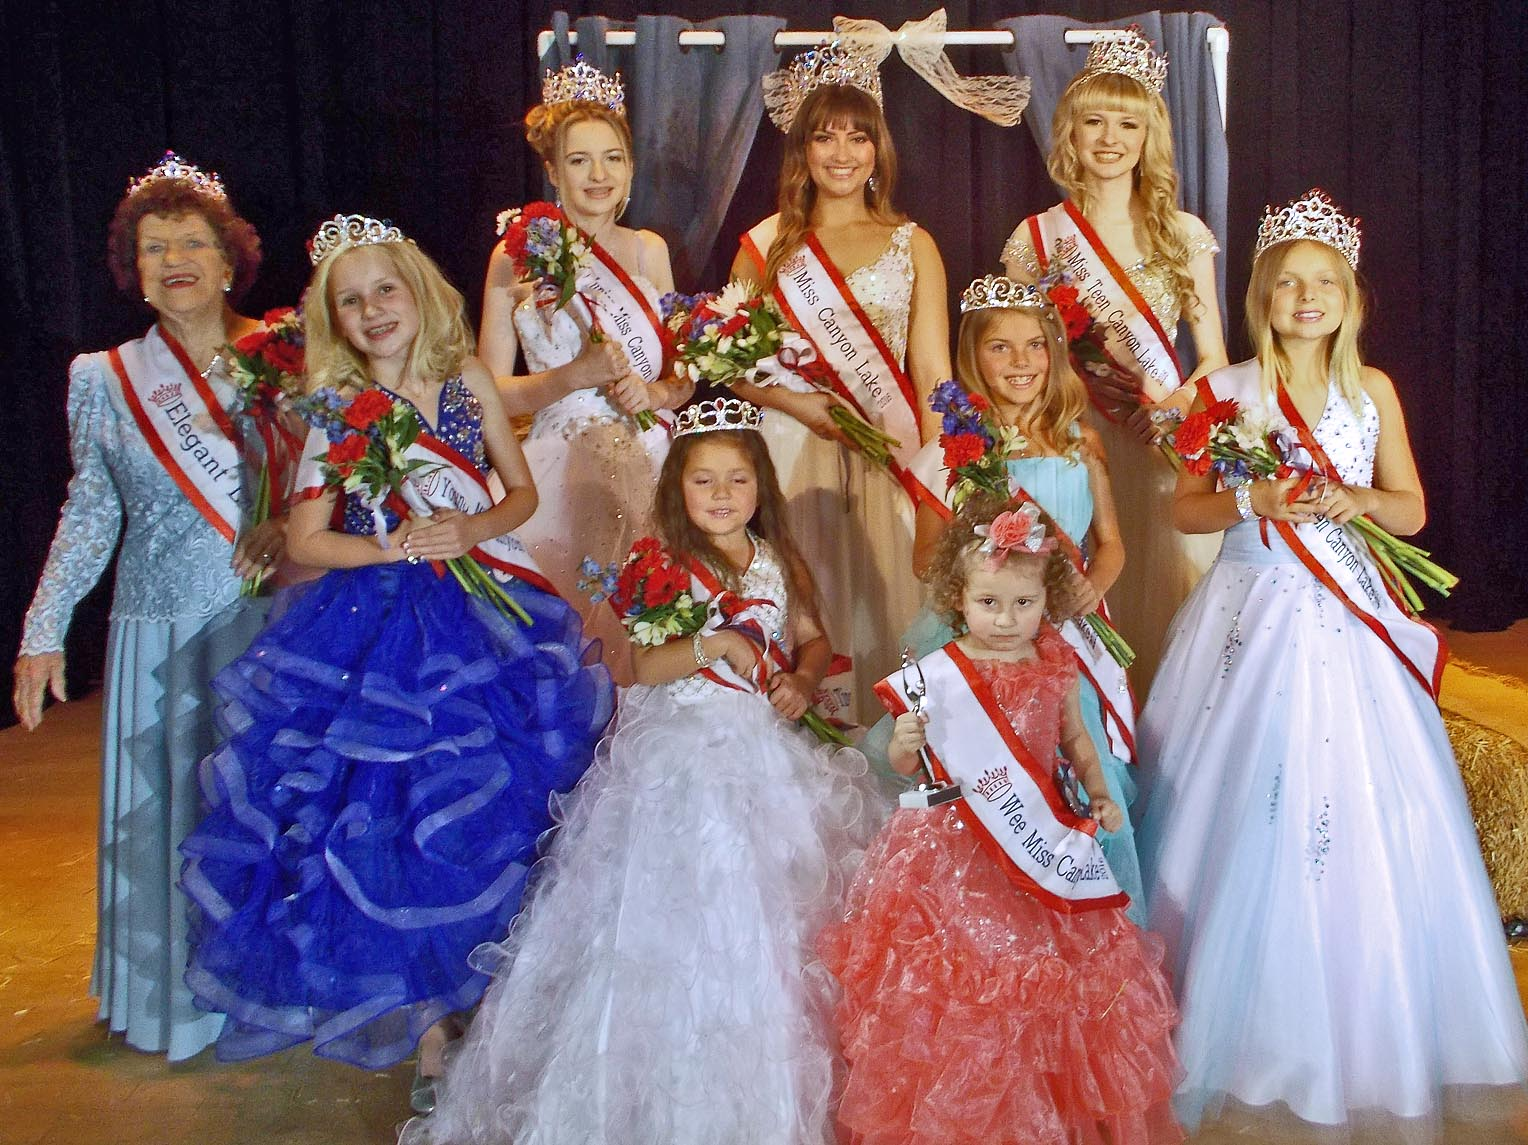 New Royal Court crowned amidst 'Denim and Diamonds'